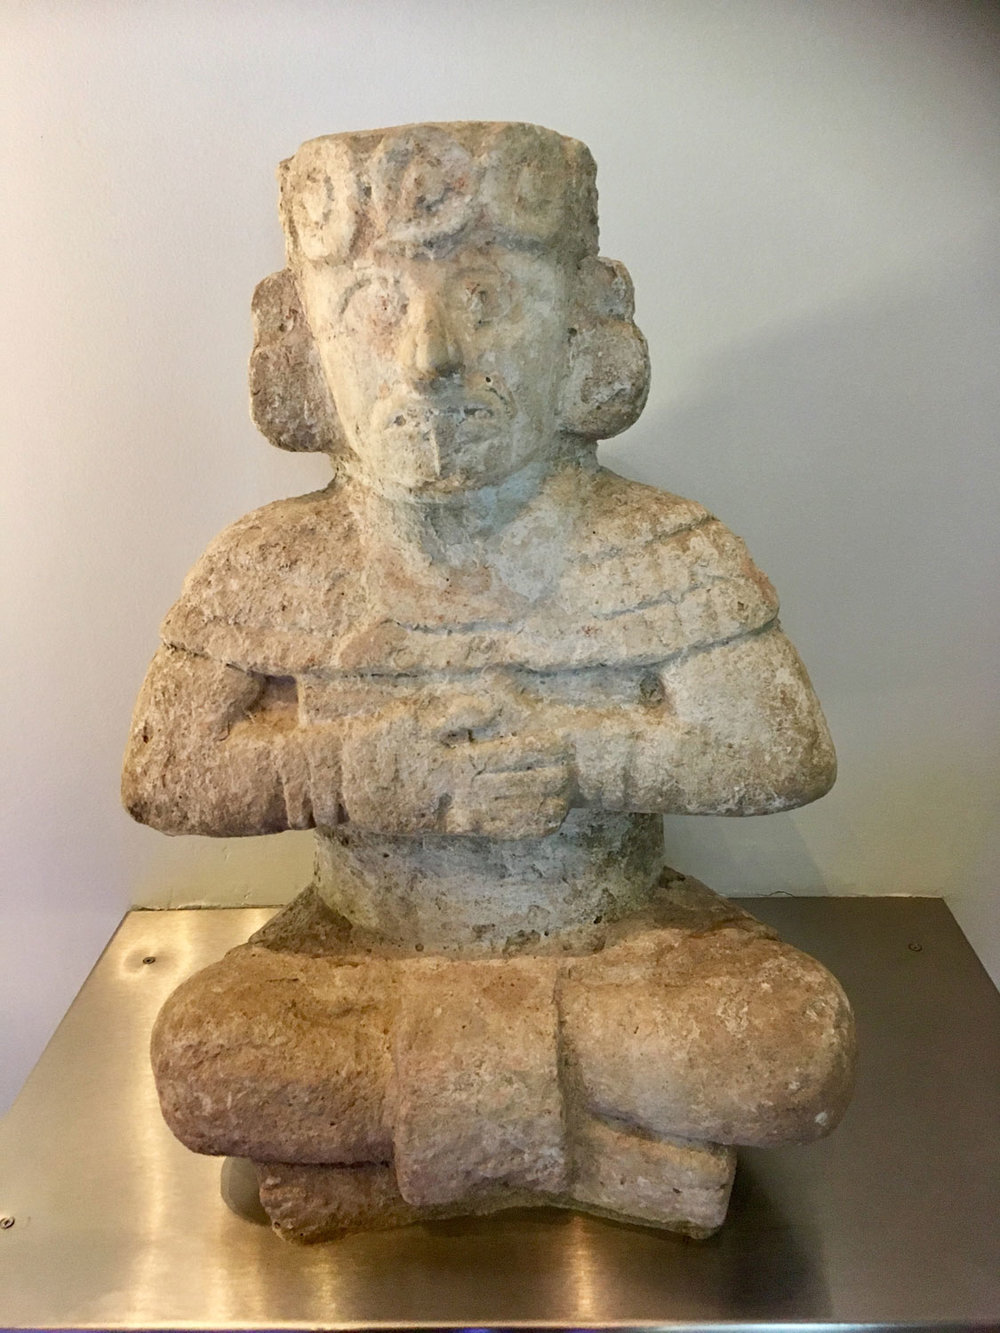 Seated figure from Chichén Itzá (1000-1250 AD). A captain? A ruler?